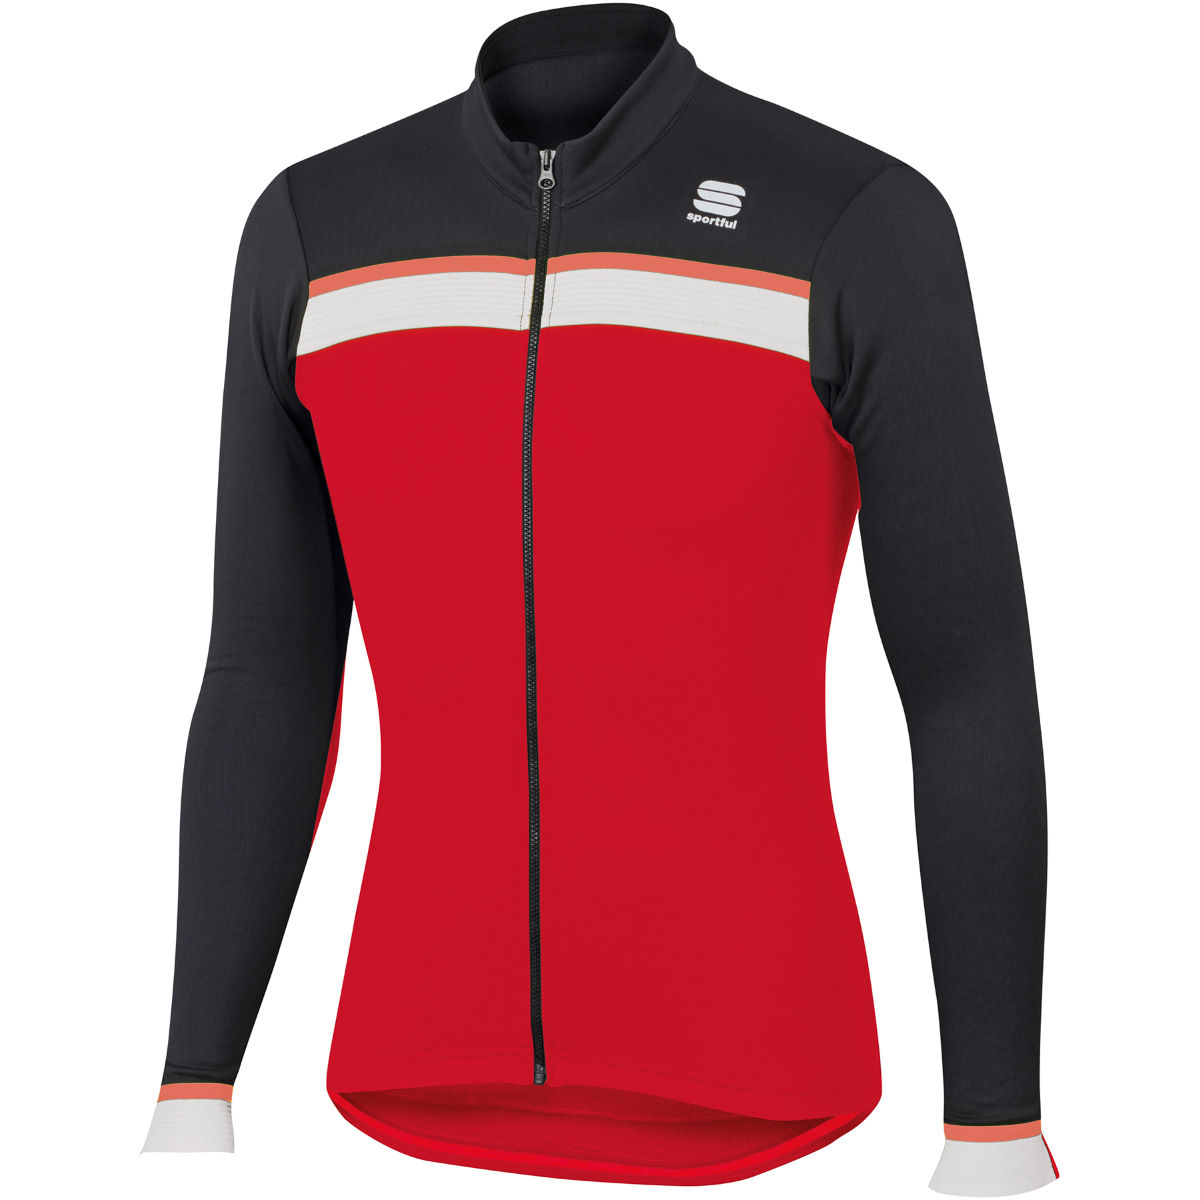 Maillot Sportful Pista Thermal (manches longues) - XS Rouge/Noir